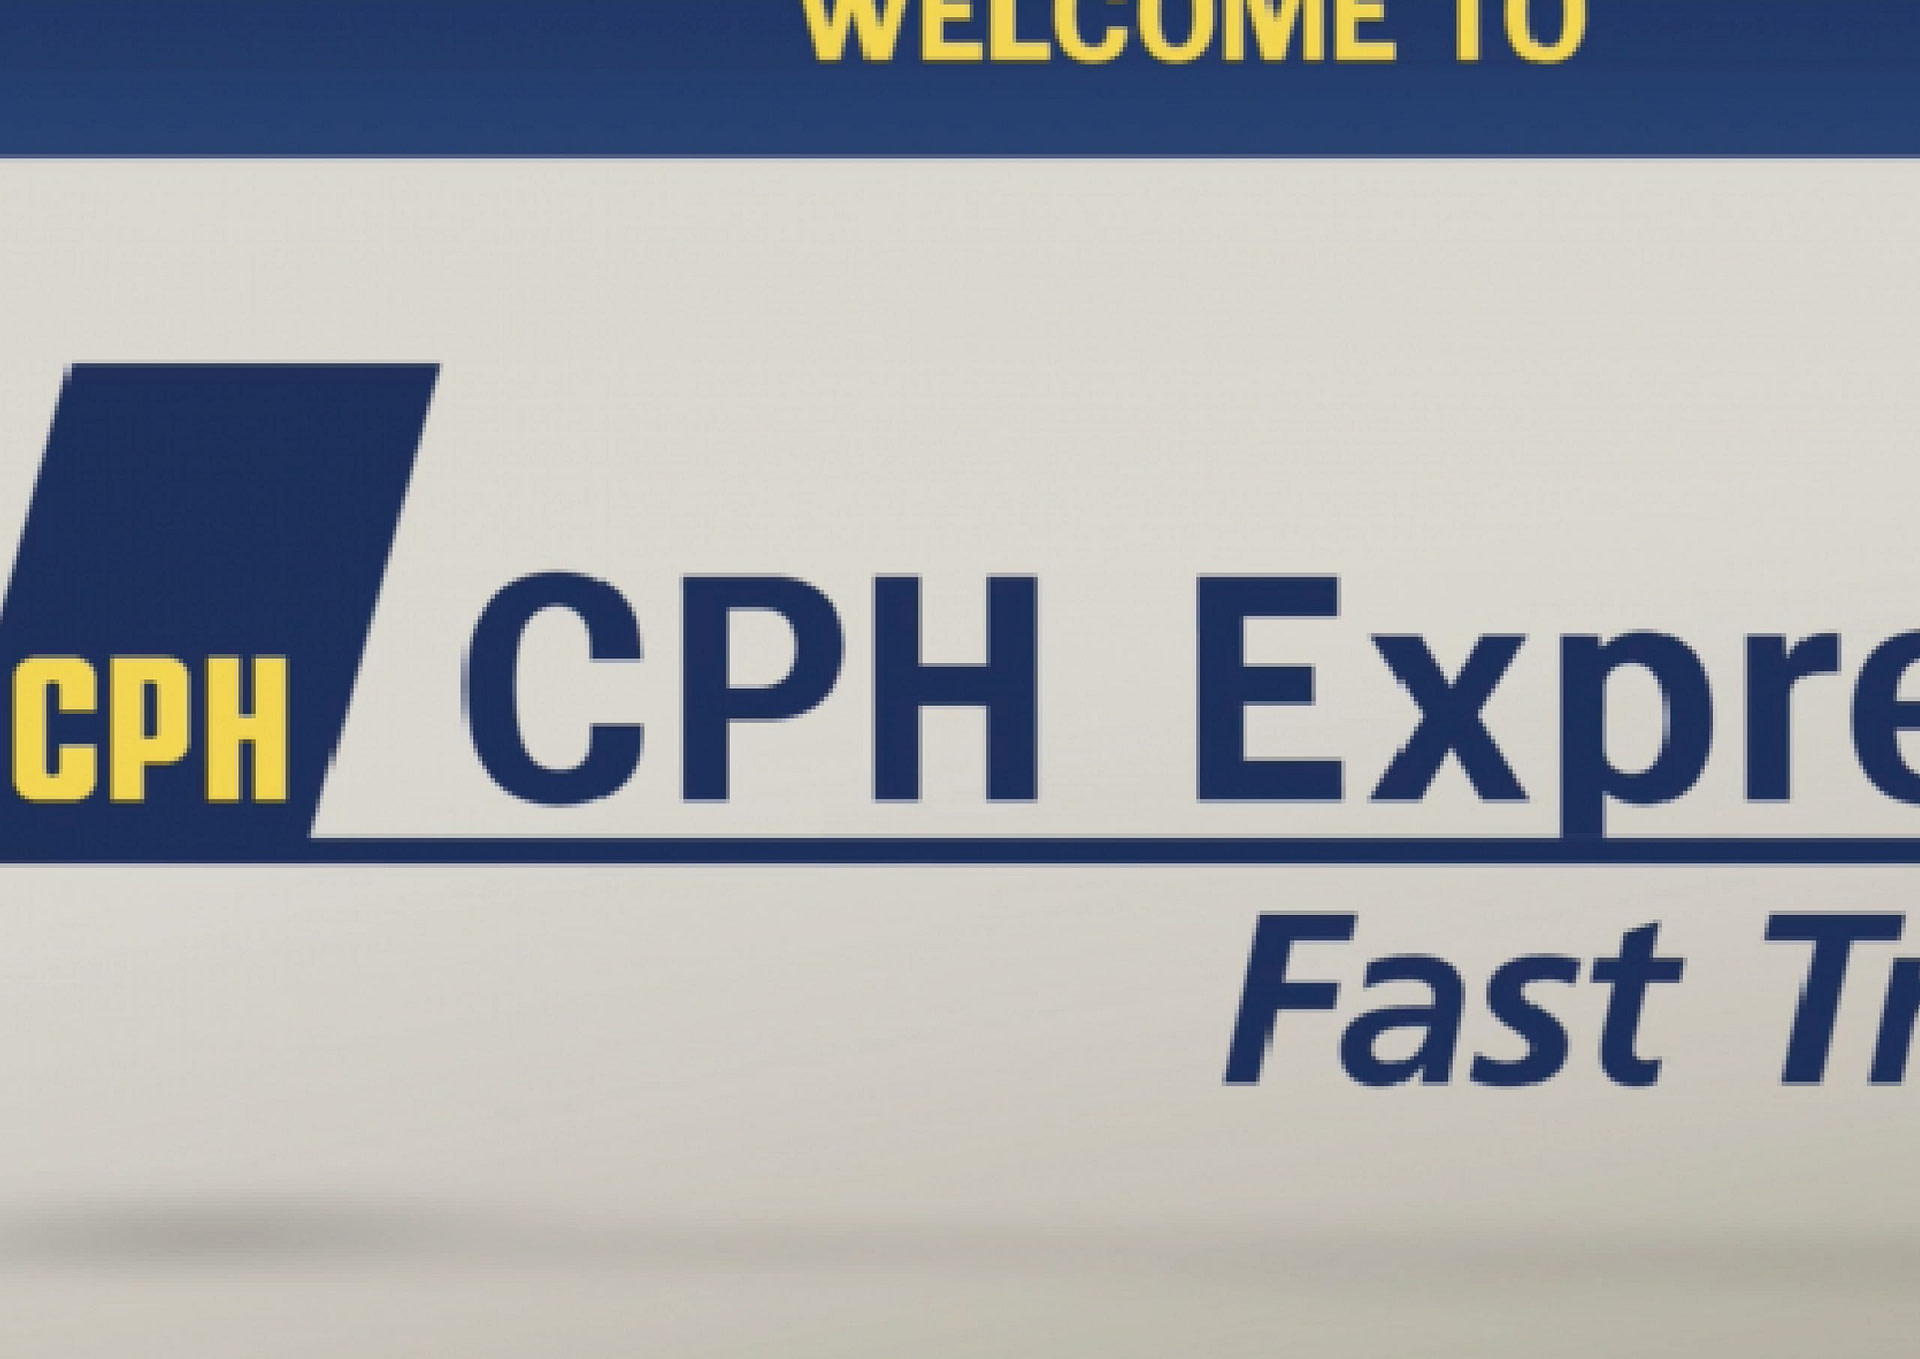 CPH Fast Track animationsvideo